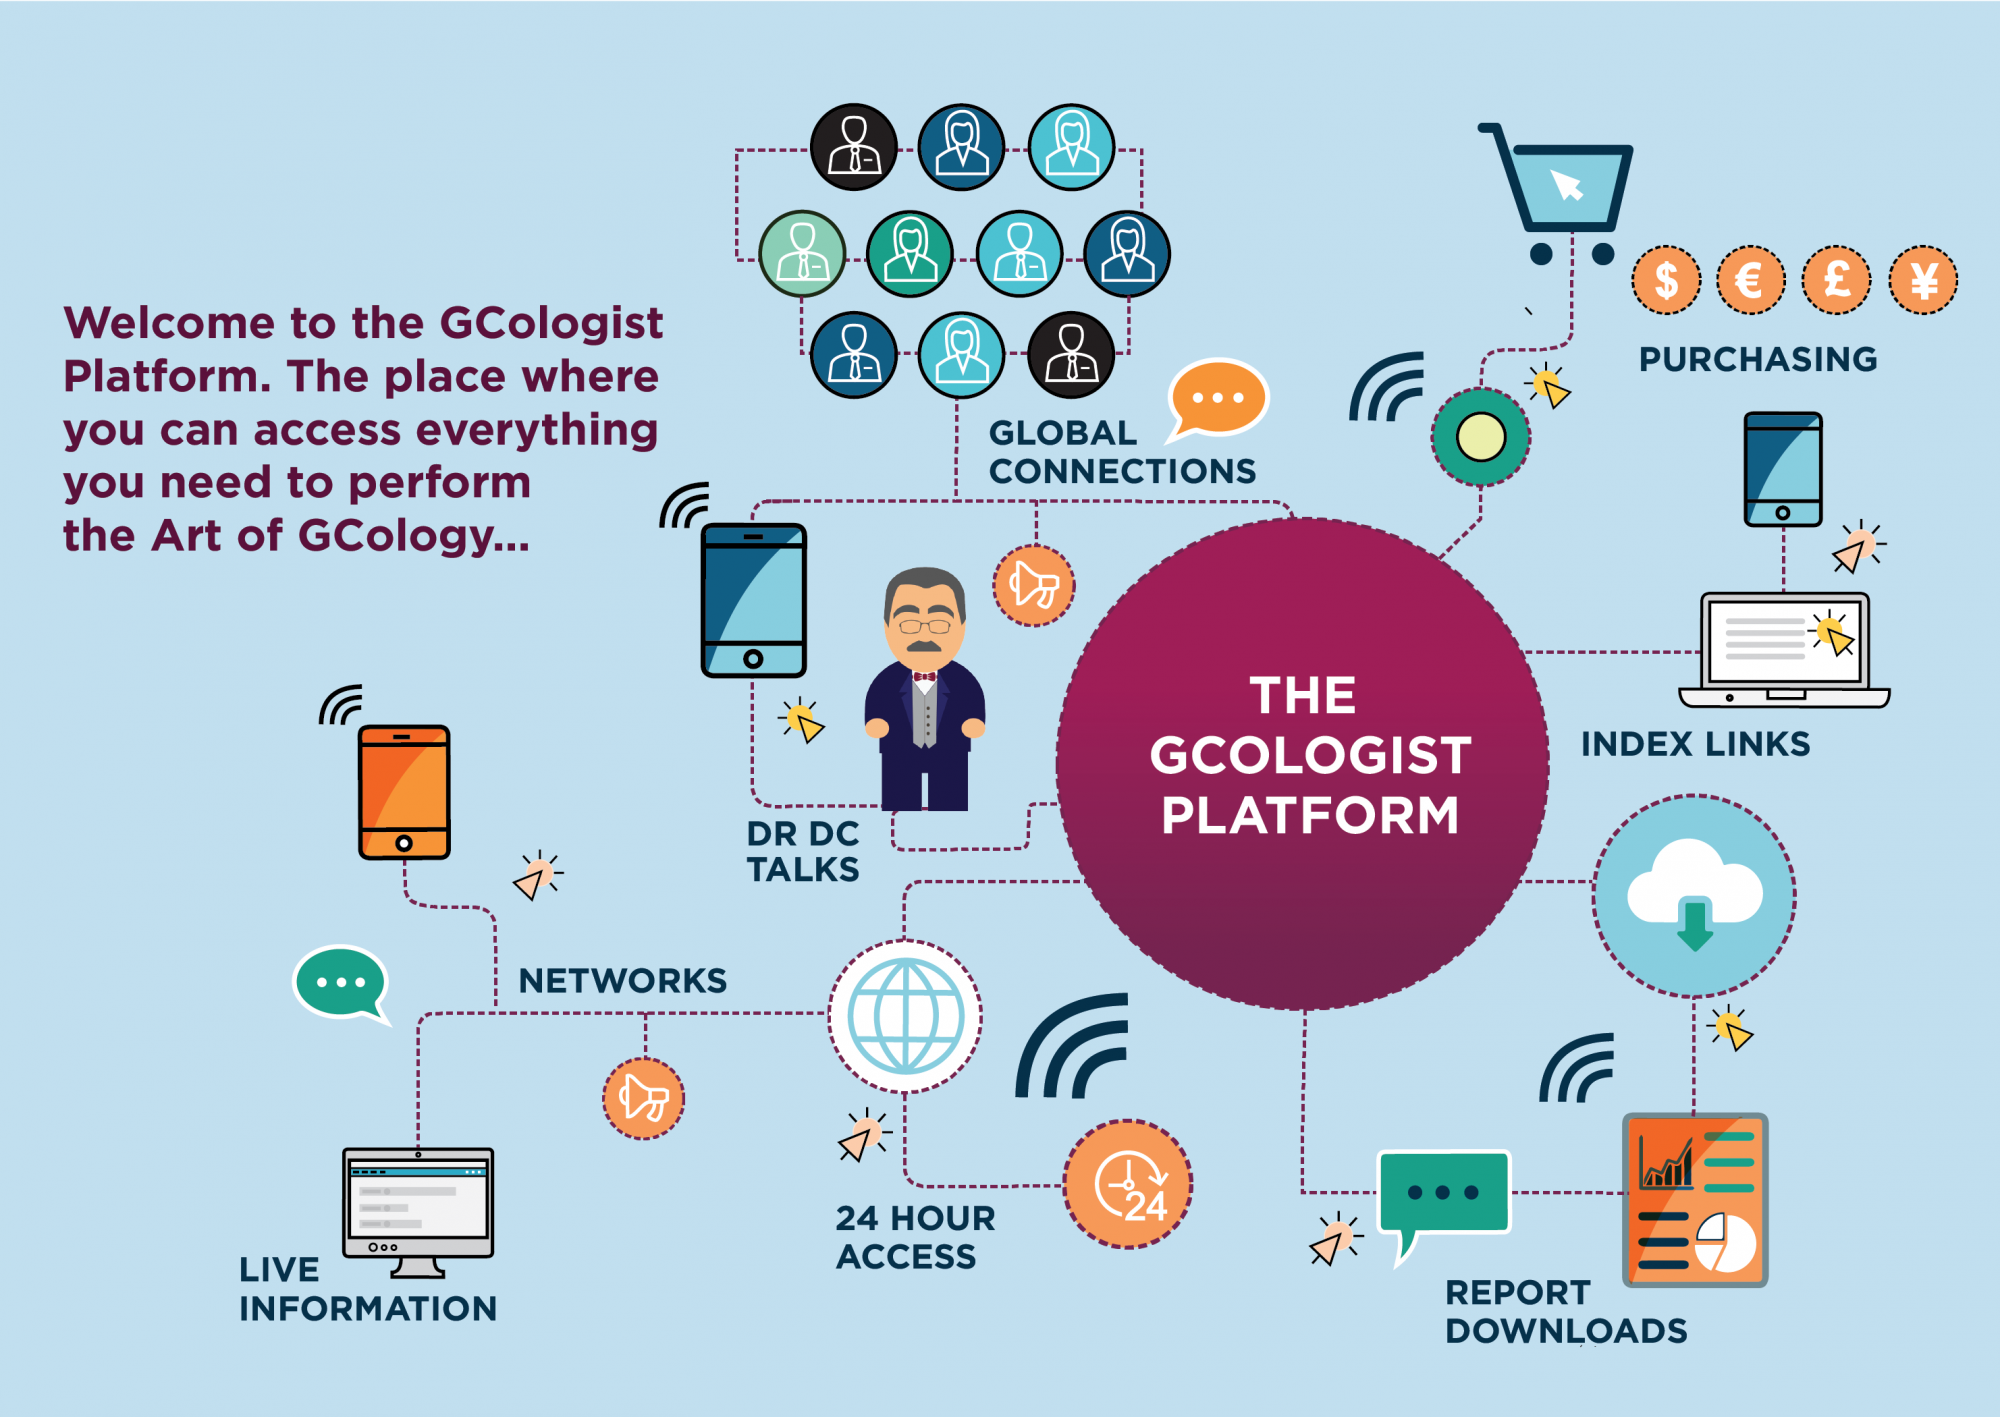 The GCologists Platform